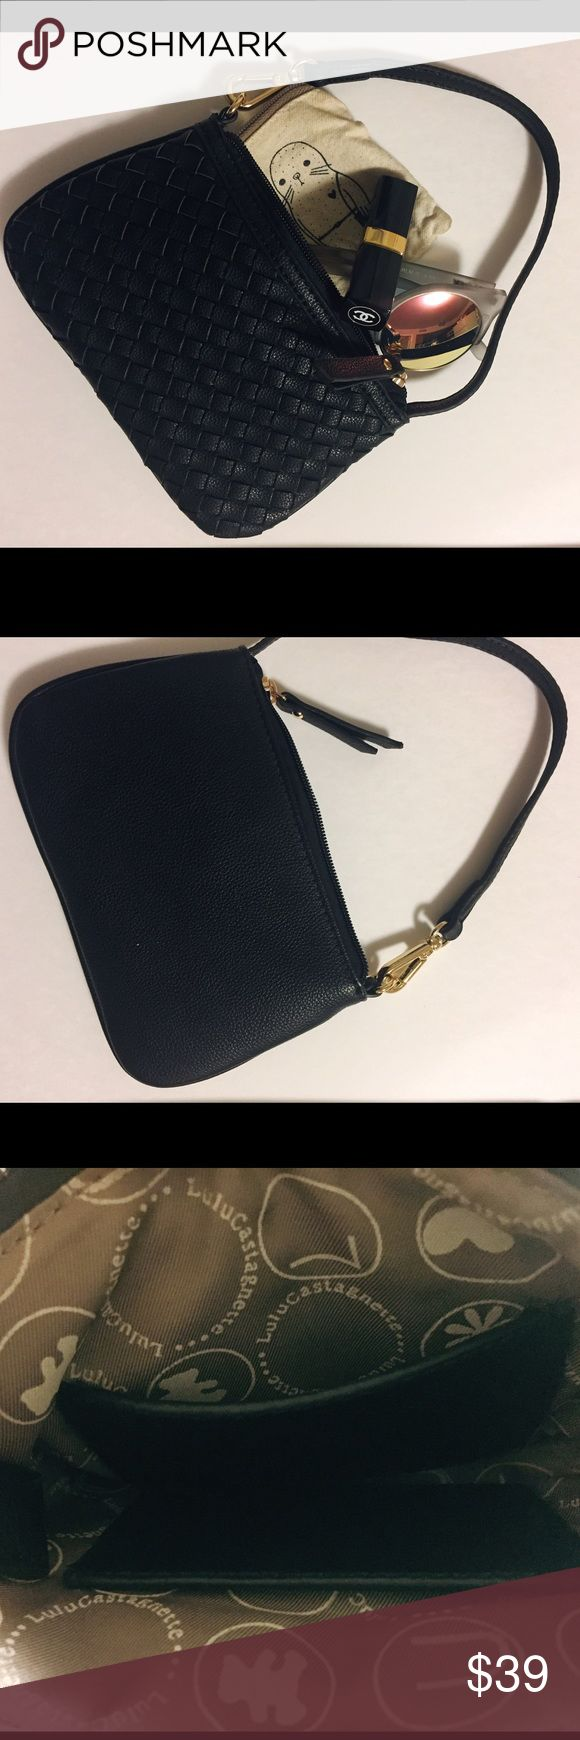 """NWOT Lulu Castagnette leather wristlet wallet NWOT Lulu Castagnette wristlet. Black weaved leather with gold metals. Zip closure. There are 2 card slits inside. Fully lined with Lulu Castagnette logo fabric inside. It fits iphone 6 (maybe not iphone 6+), small coin purse, and a lipstick. NOT from KS, it's from Lulu Castagnette (Made in France). Measurement: 7.5 x 4.5 x 1"""". Feel free to ask any questions if you have. Thank you 💕 kate spade Bags Clutches & Wristlets"""